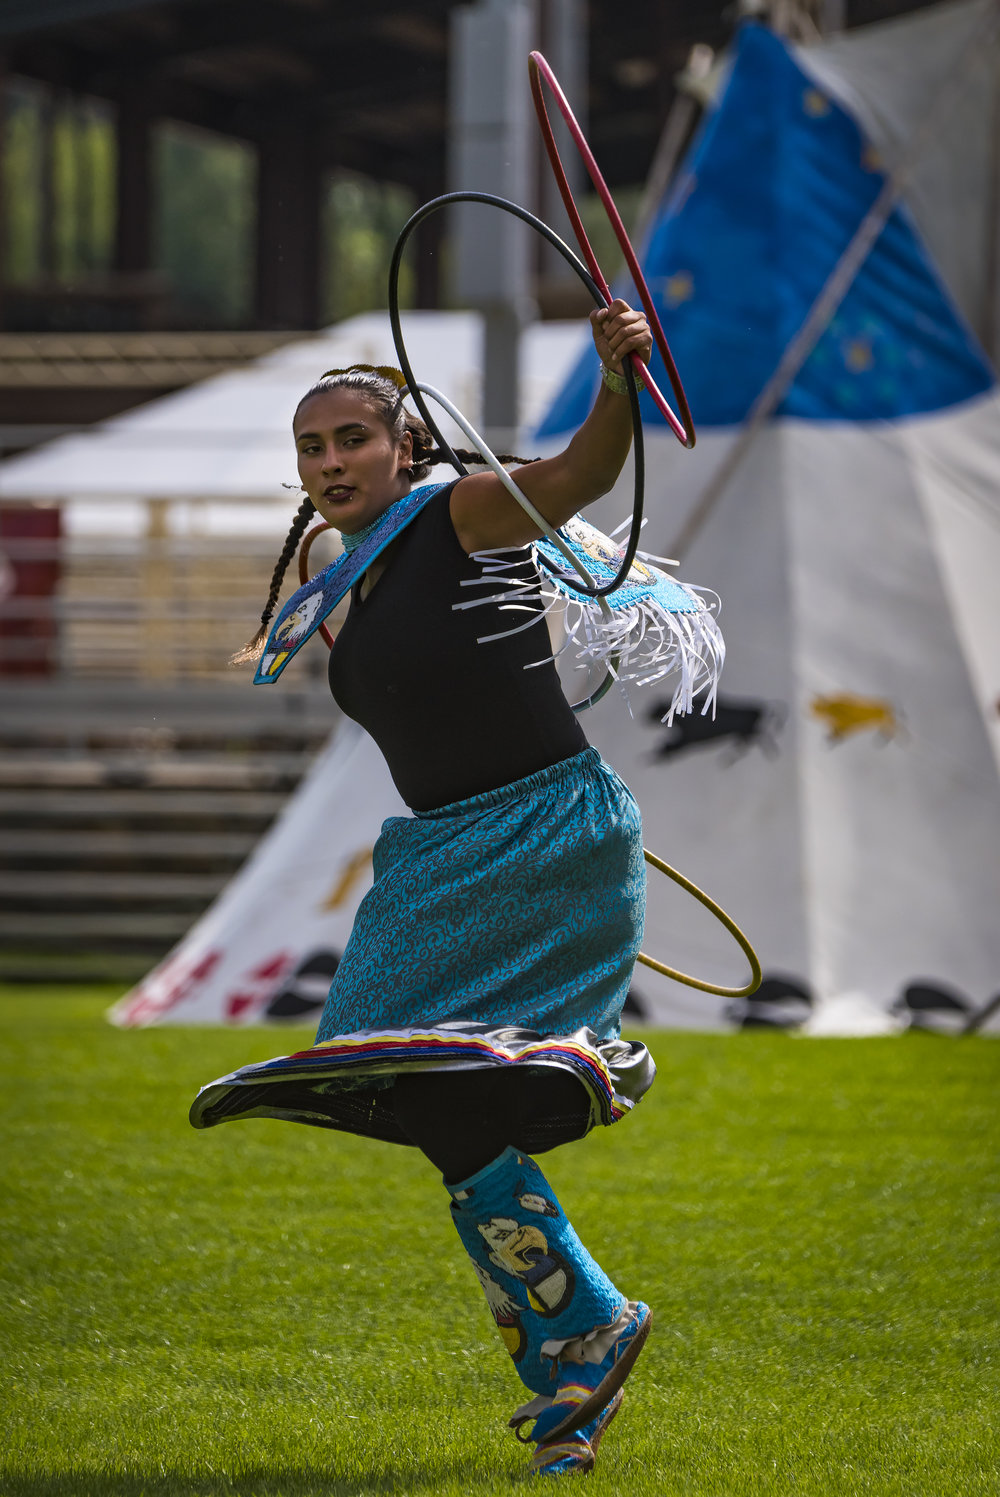 Hoop Dancer, courtesy of the South Dakota Department of Tourism